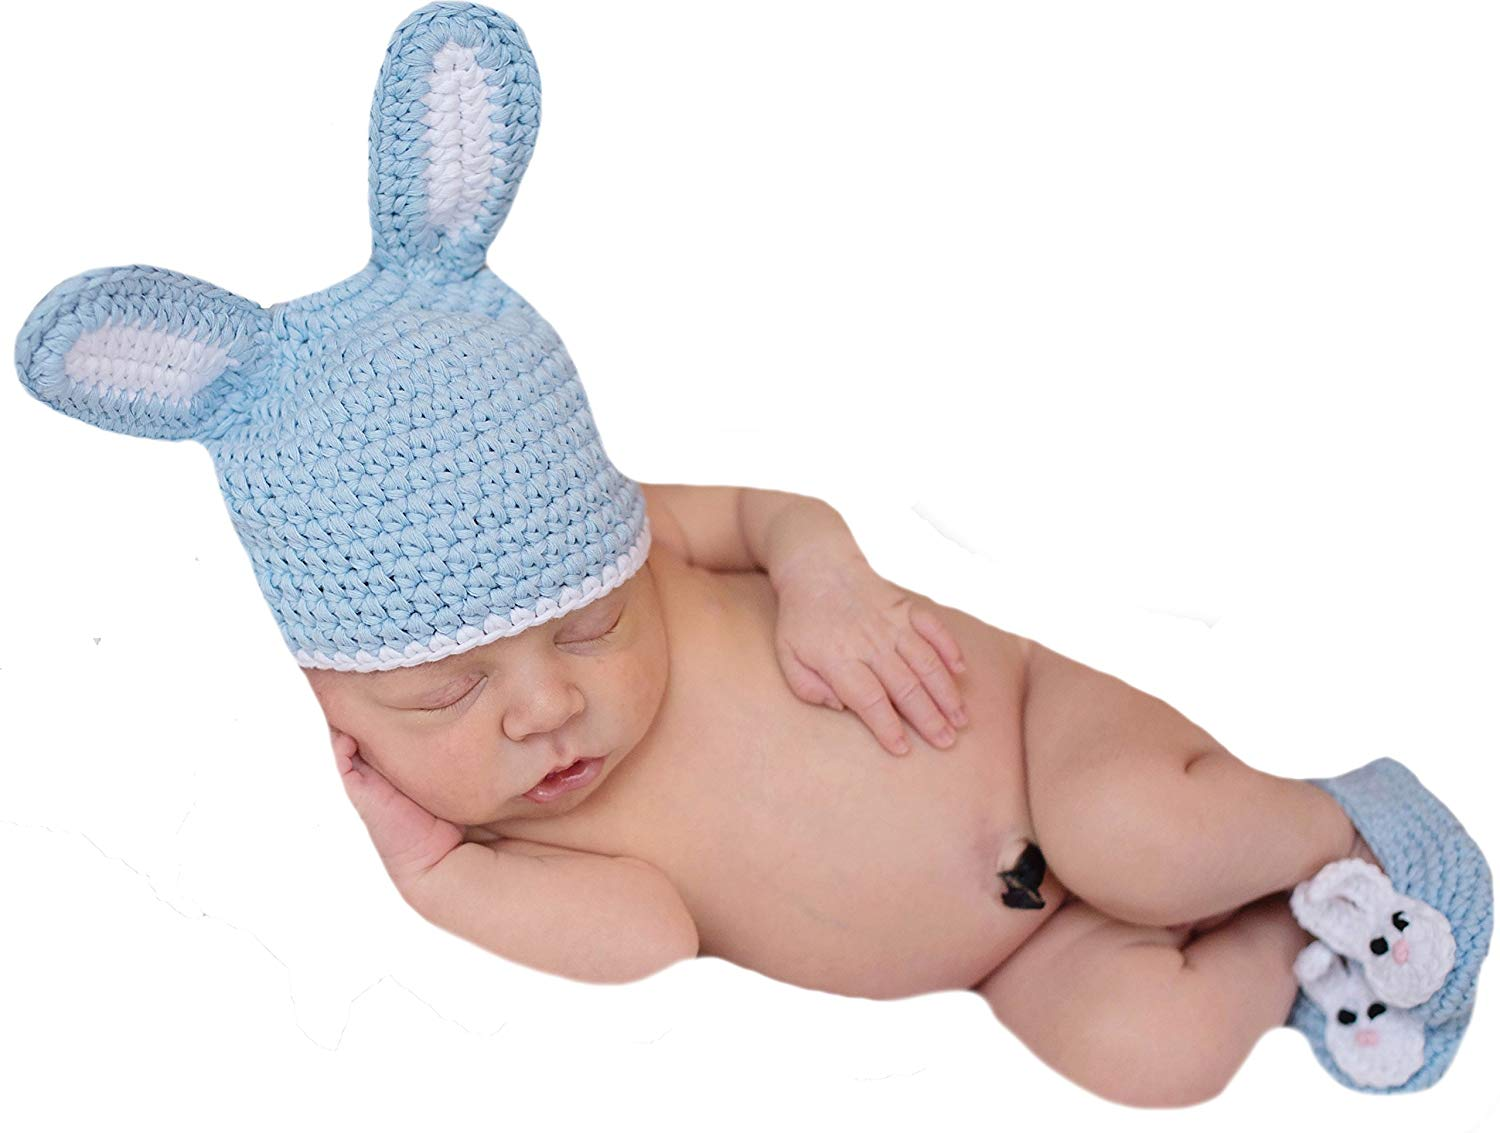 87fac7aefcb Get Quotations · Melondipity Blue Bunny Hat and Booties Set